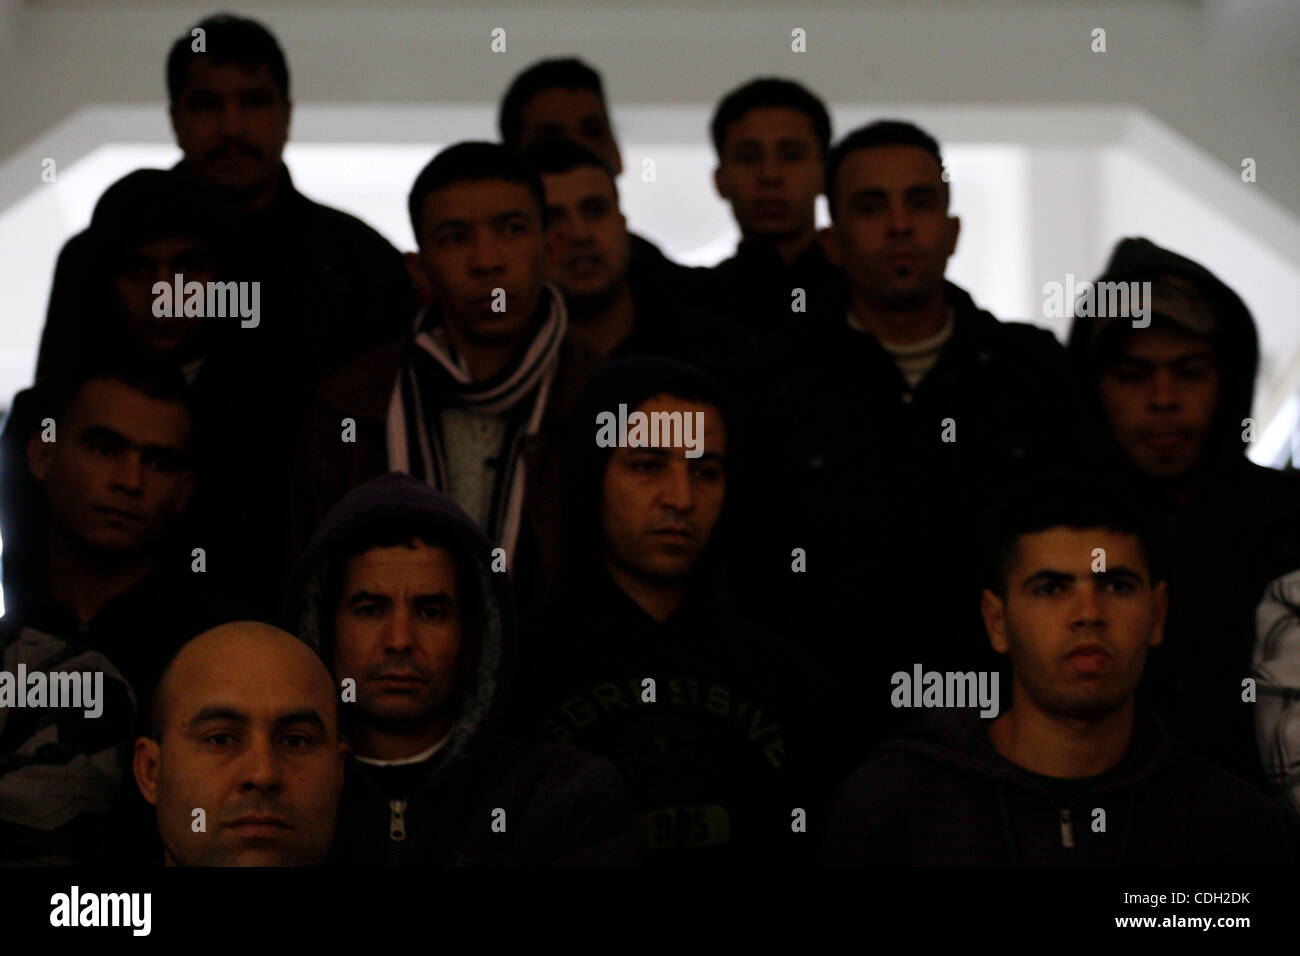 Jan. 25, 2011 - Athens, Greece - Immigrants give press conference. 300 immigrants who are employed in menial jobs - Stock Image